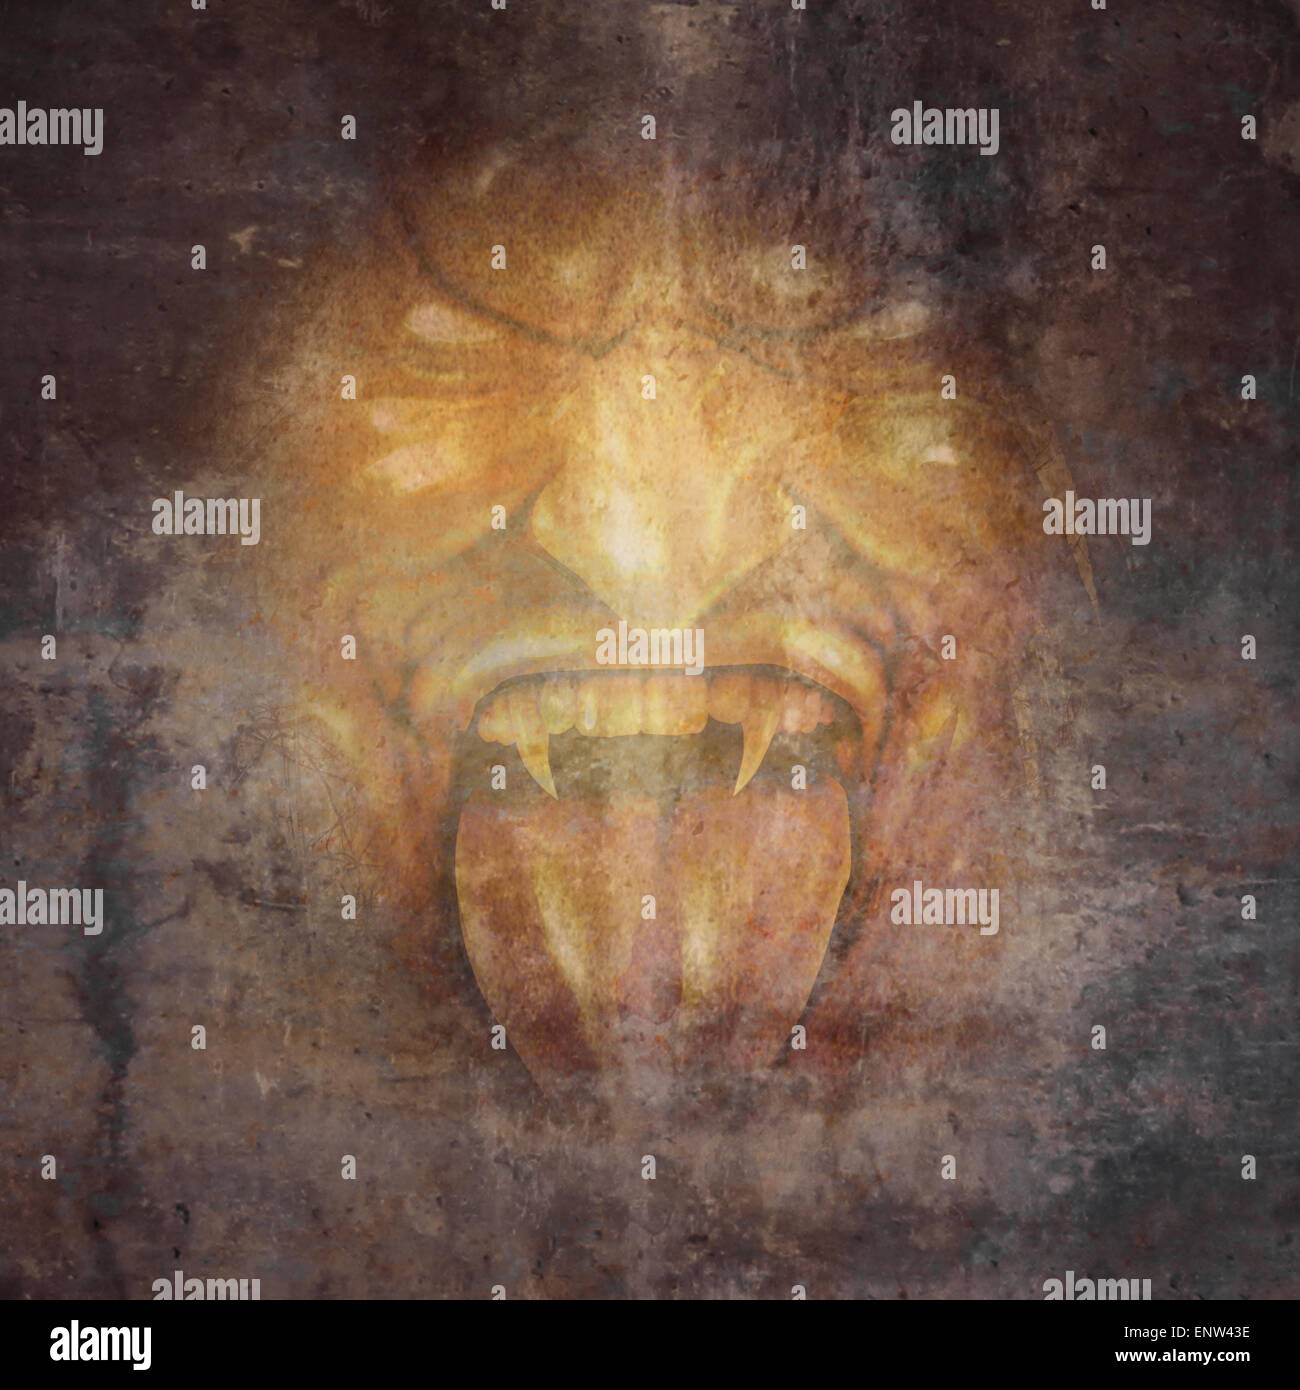 Demon face and scary monster concept as a screaming cruel zombie or vampire appearing from the dark shadows as a - Stock Image